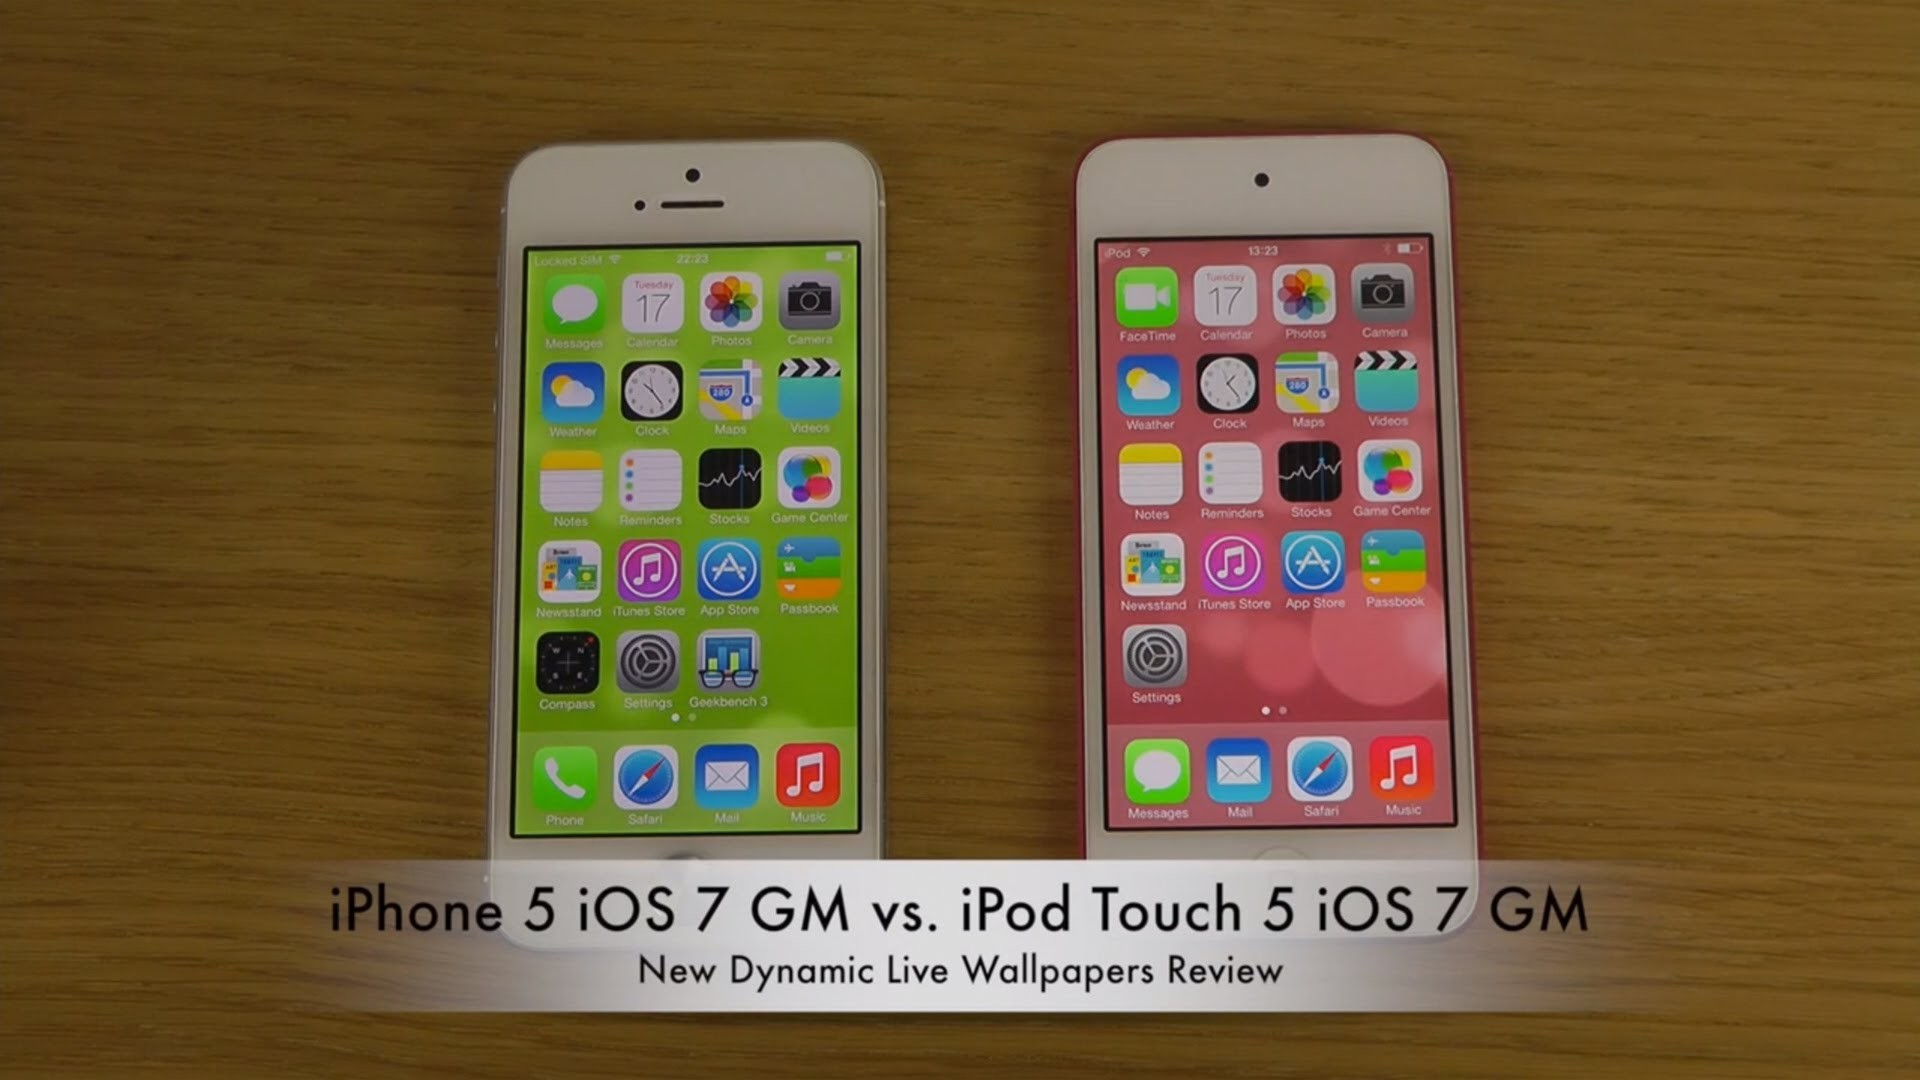 Res: 1920x1080, iPhone 5 iOS 7 GM vs. iPod Touch 5 iOS 7 GM - New Dynamic Live Wallpapers  Comparison Review - YouTube